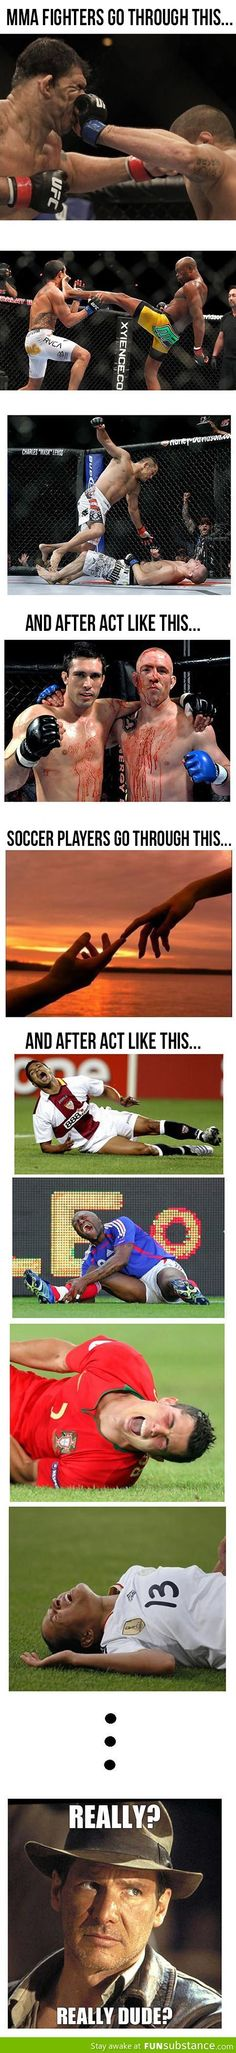 i know from years of watching soccer that this is true!